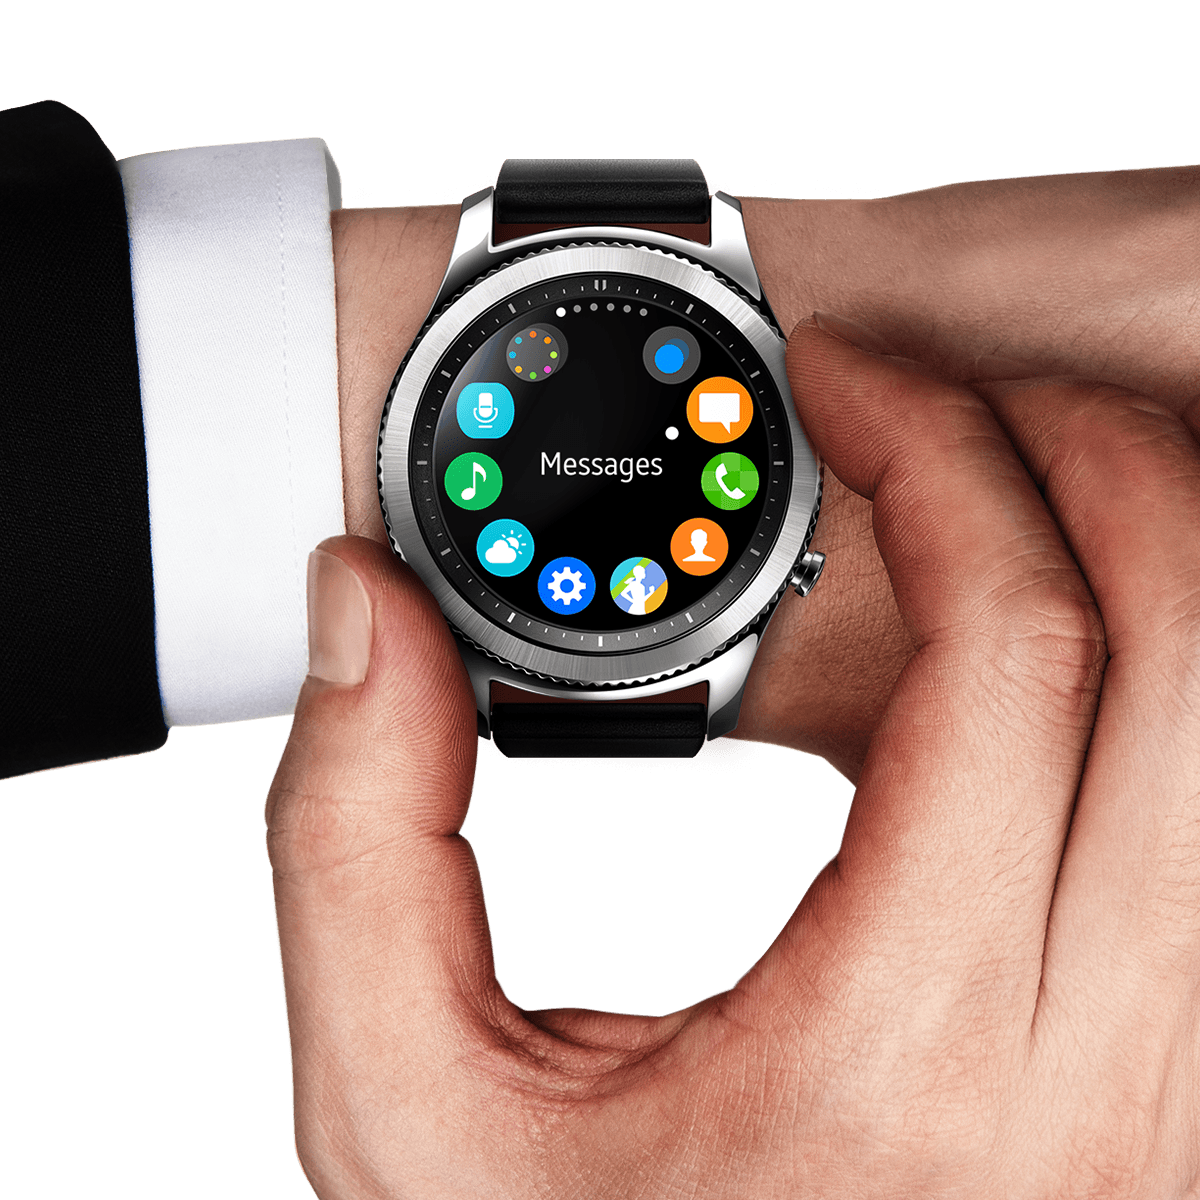 Samsung accidentally confirms the Galaxy Watch